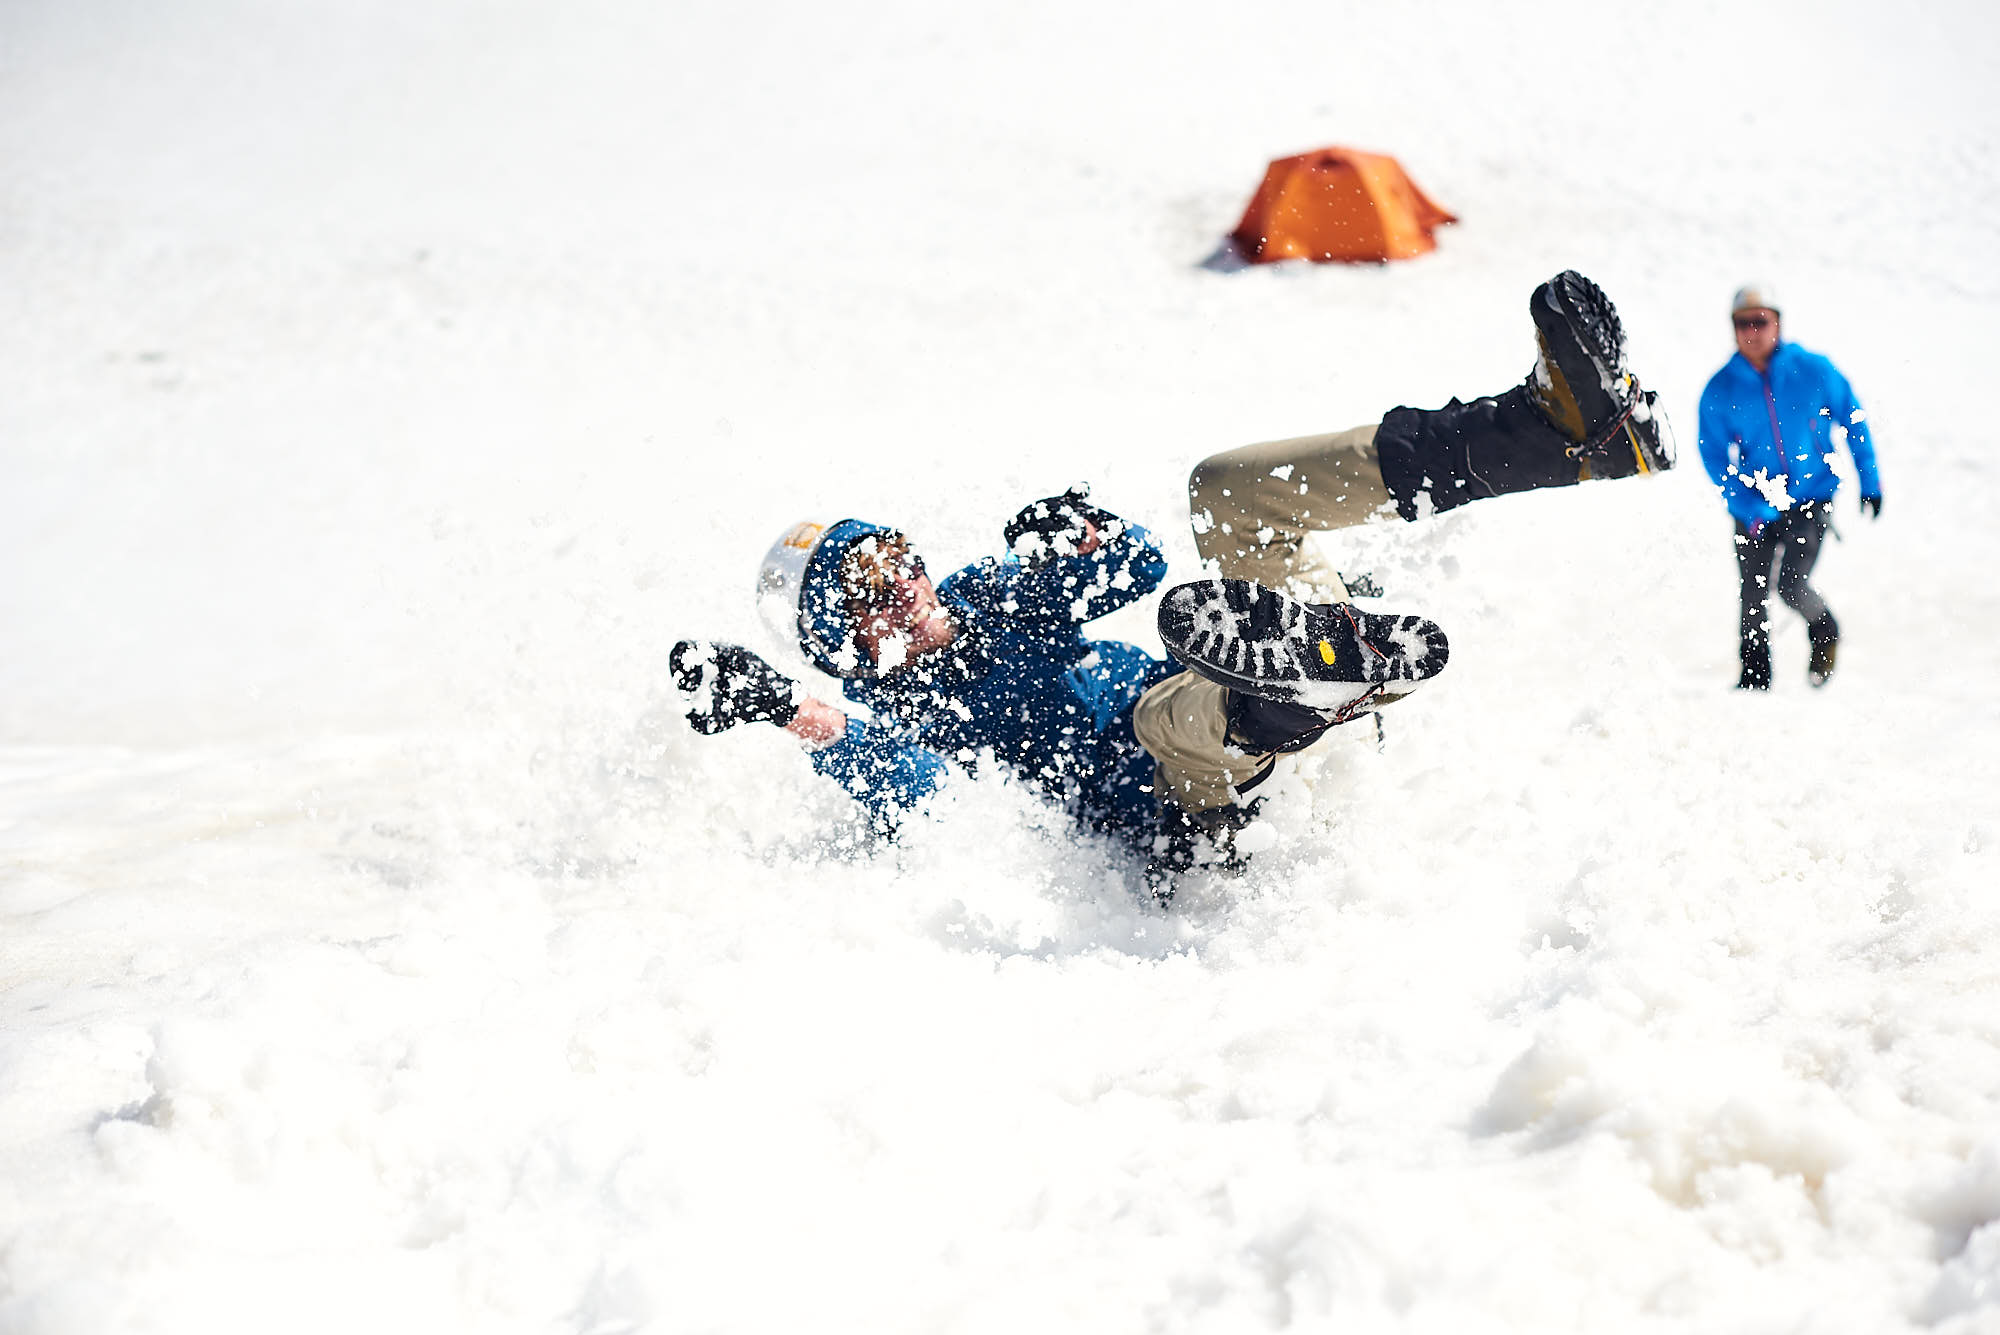 Alpinist doing a training drill, sliding down a hill, trying to stop his fall with an ice axe